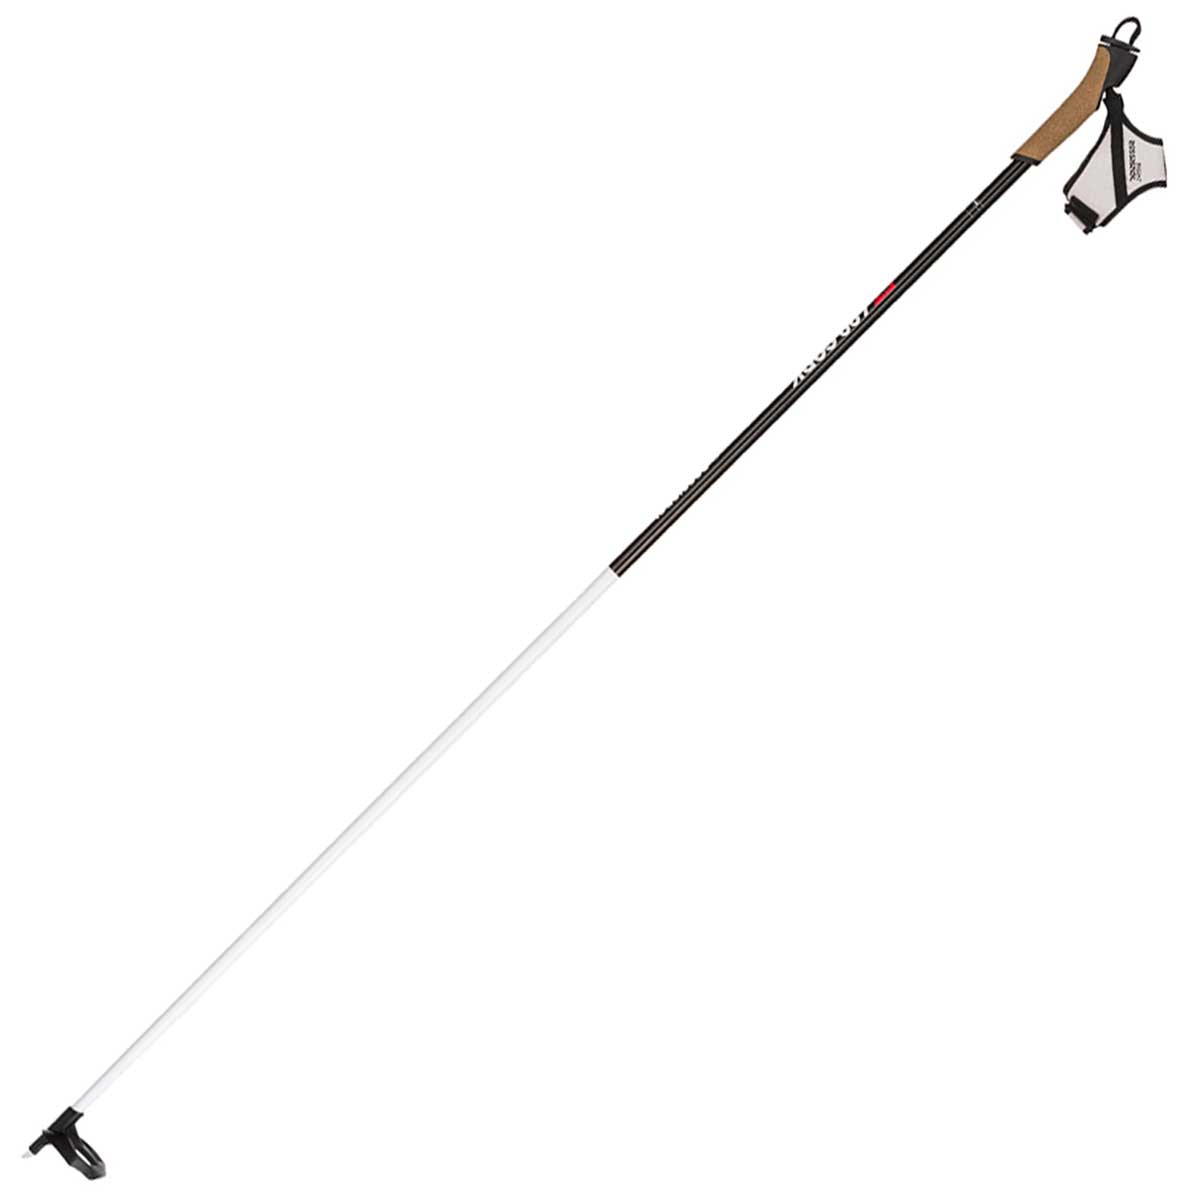 Rossignol FT-600 Ski Pole in Black and White full view